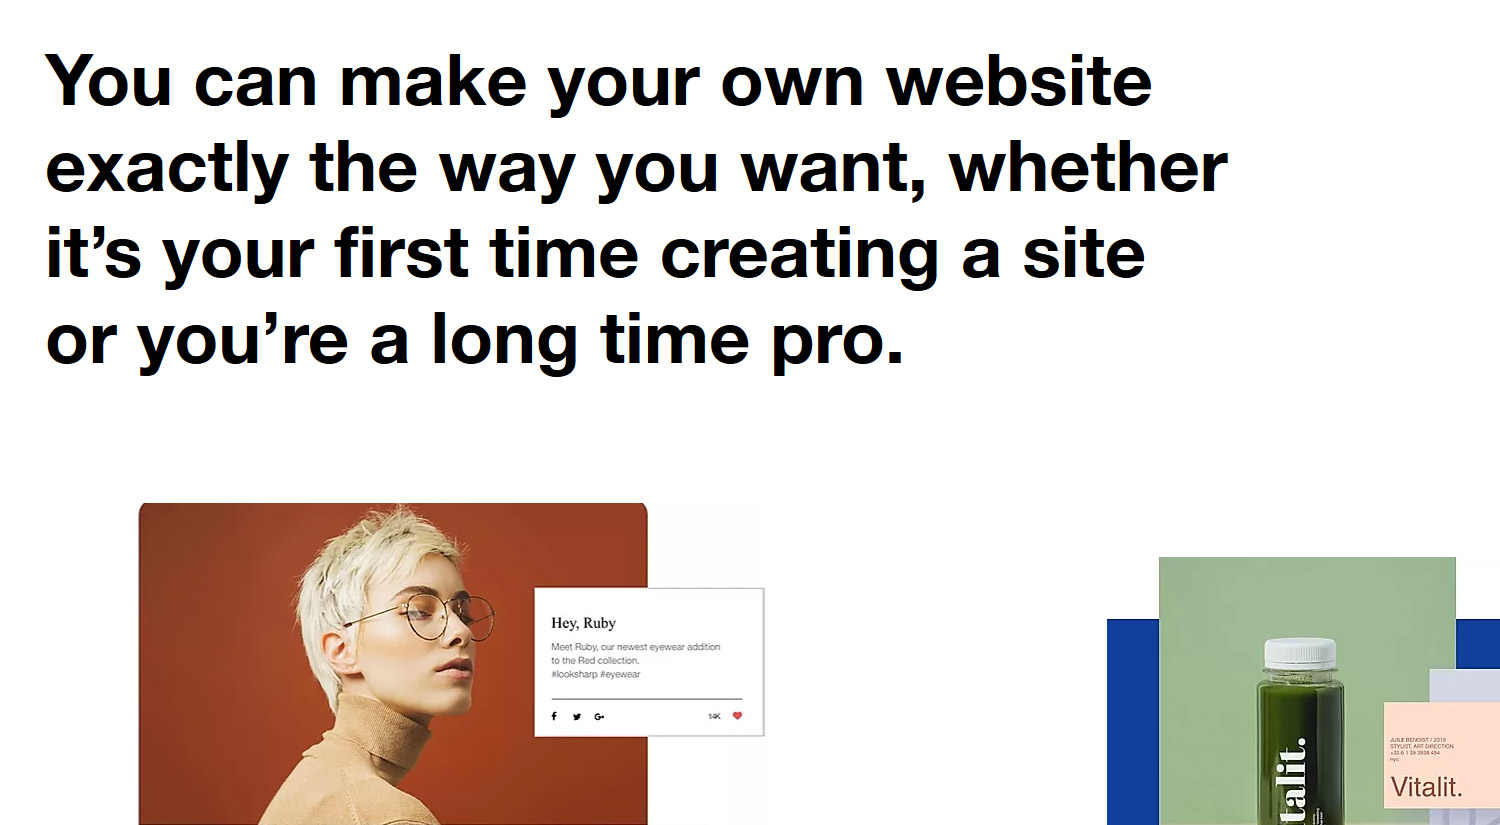 Create your own website with Wix